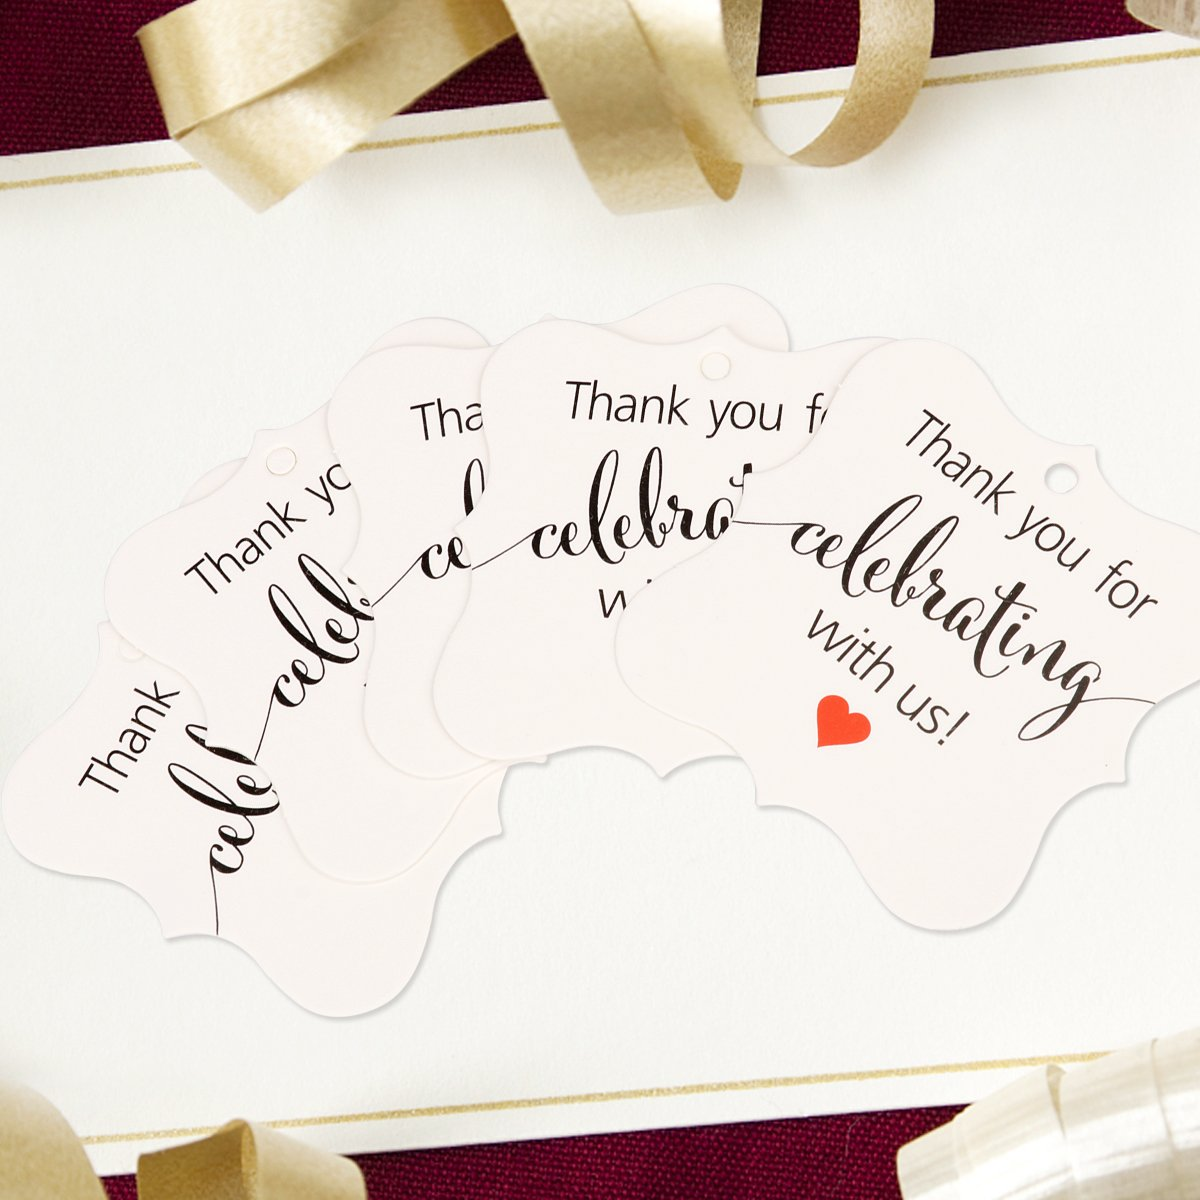 Aprince Paper Favor Gift Tags 100 PCS Thank You Tags Wedding Favor Gift Tags Thank You for Celebrating with Us White Square Tags with 20m Natural Jute Twine Perfect for Bridal Baby Shower Anniversary by Aprince (Image #4)